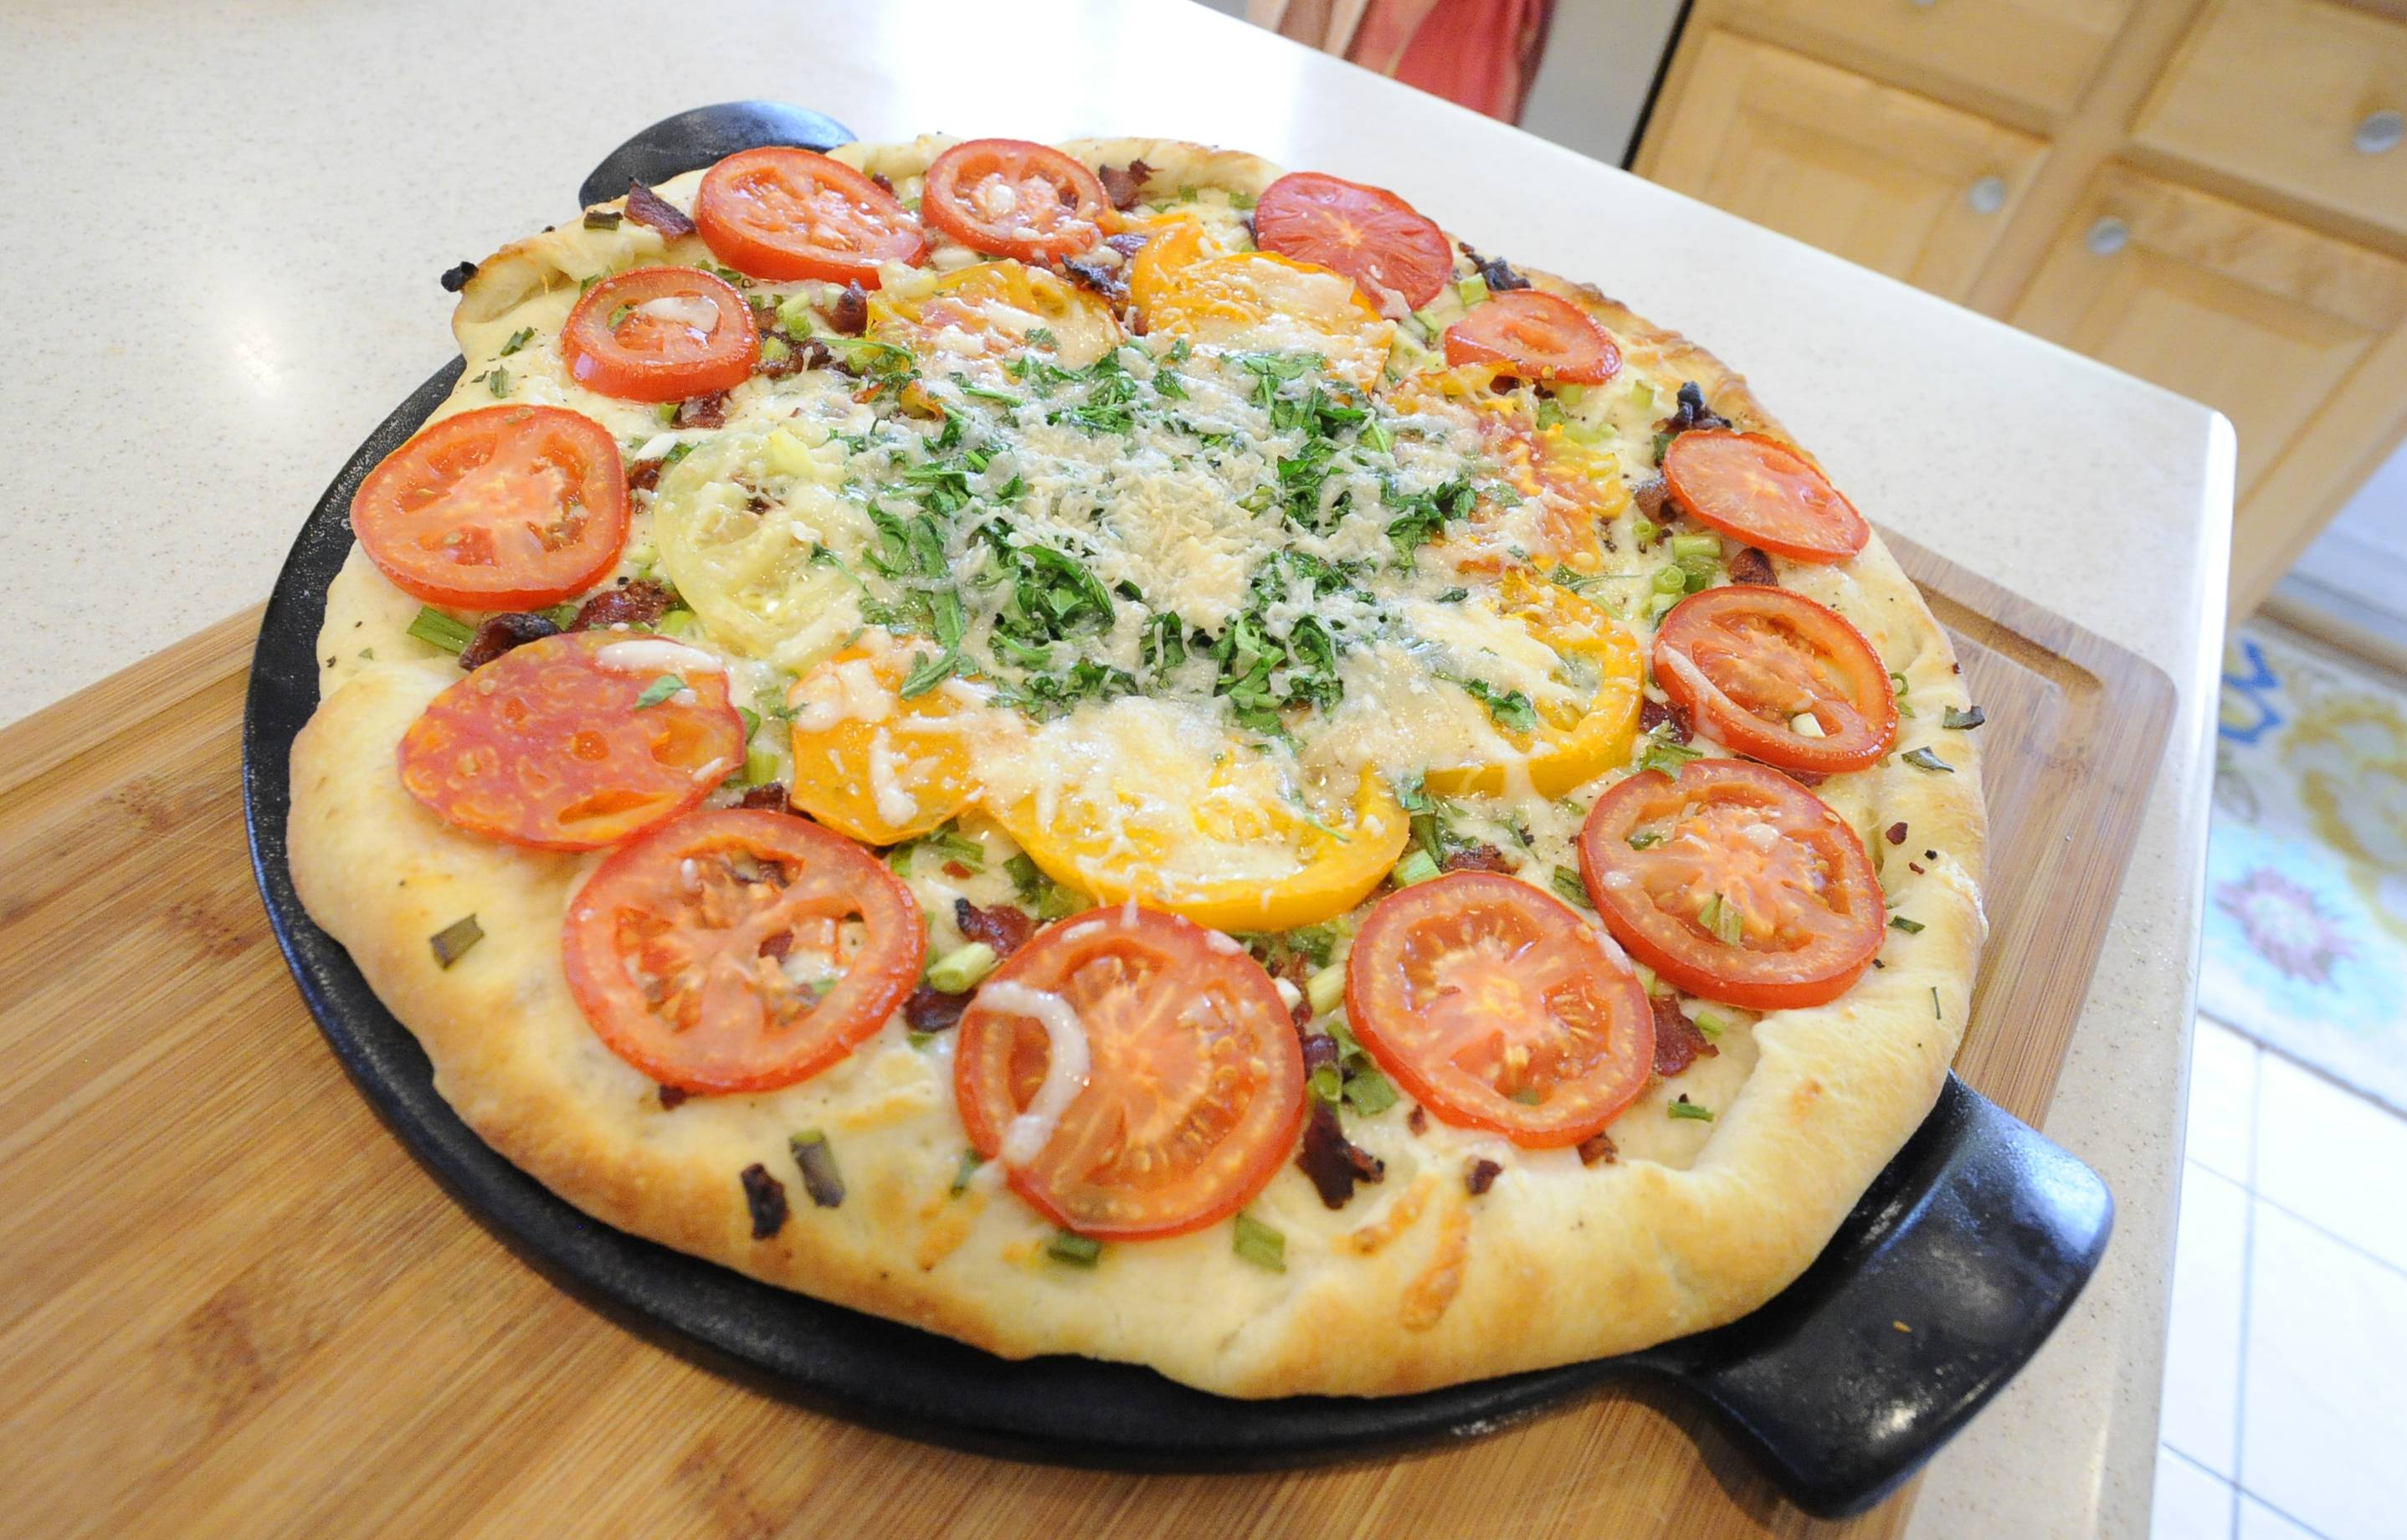 Tara Riley partnered tomatoes from Whole Foods Market with vegetables from her garden and Fontina cheese to make a BLT pizza.